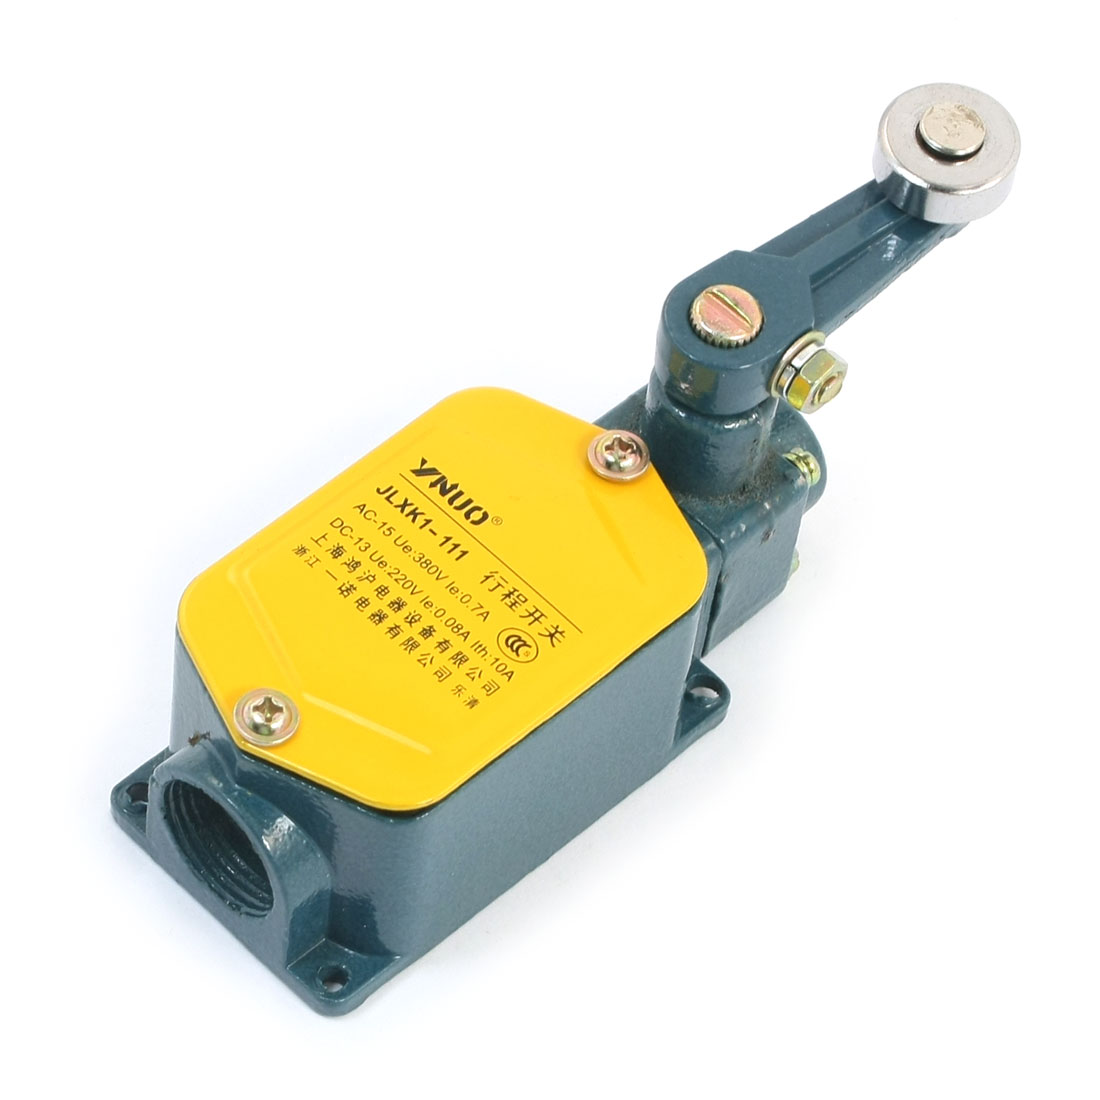 JLXK1-111 Left Right Dual Side Rotary Roller Arm Lever Enclosed SPDT 1NO 1NC Momentary Reset Limit Switch 380V 10A